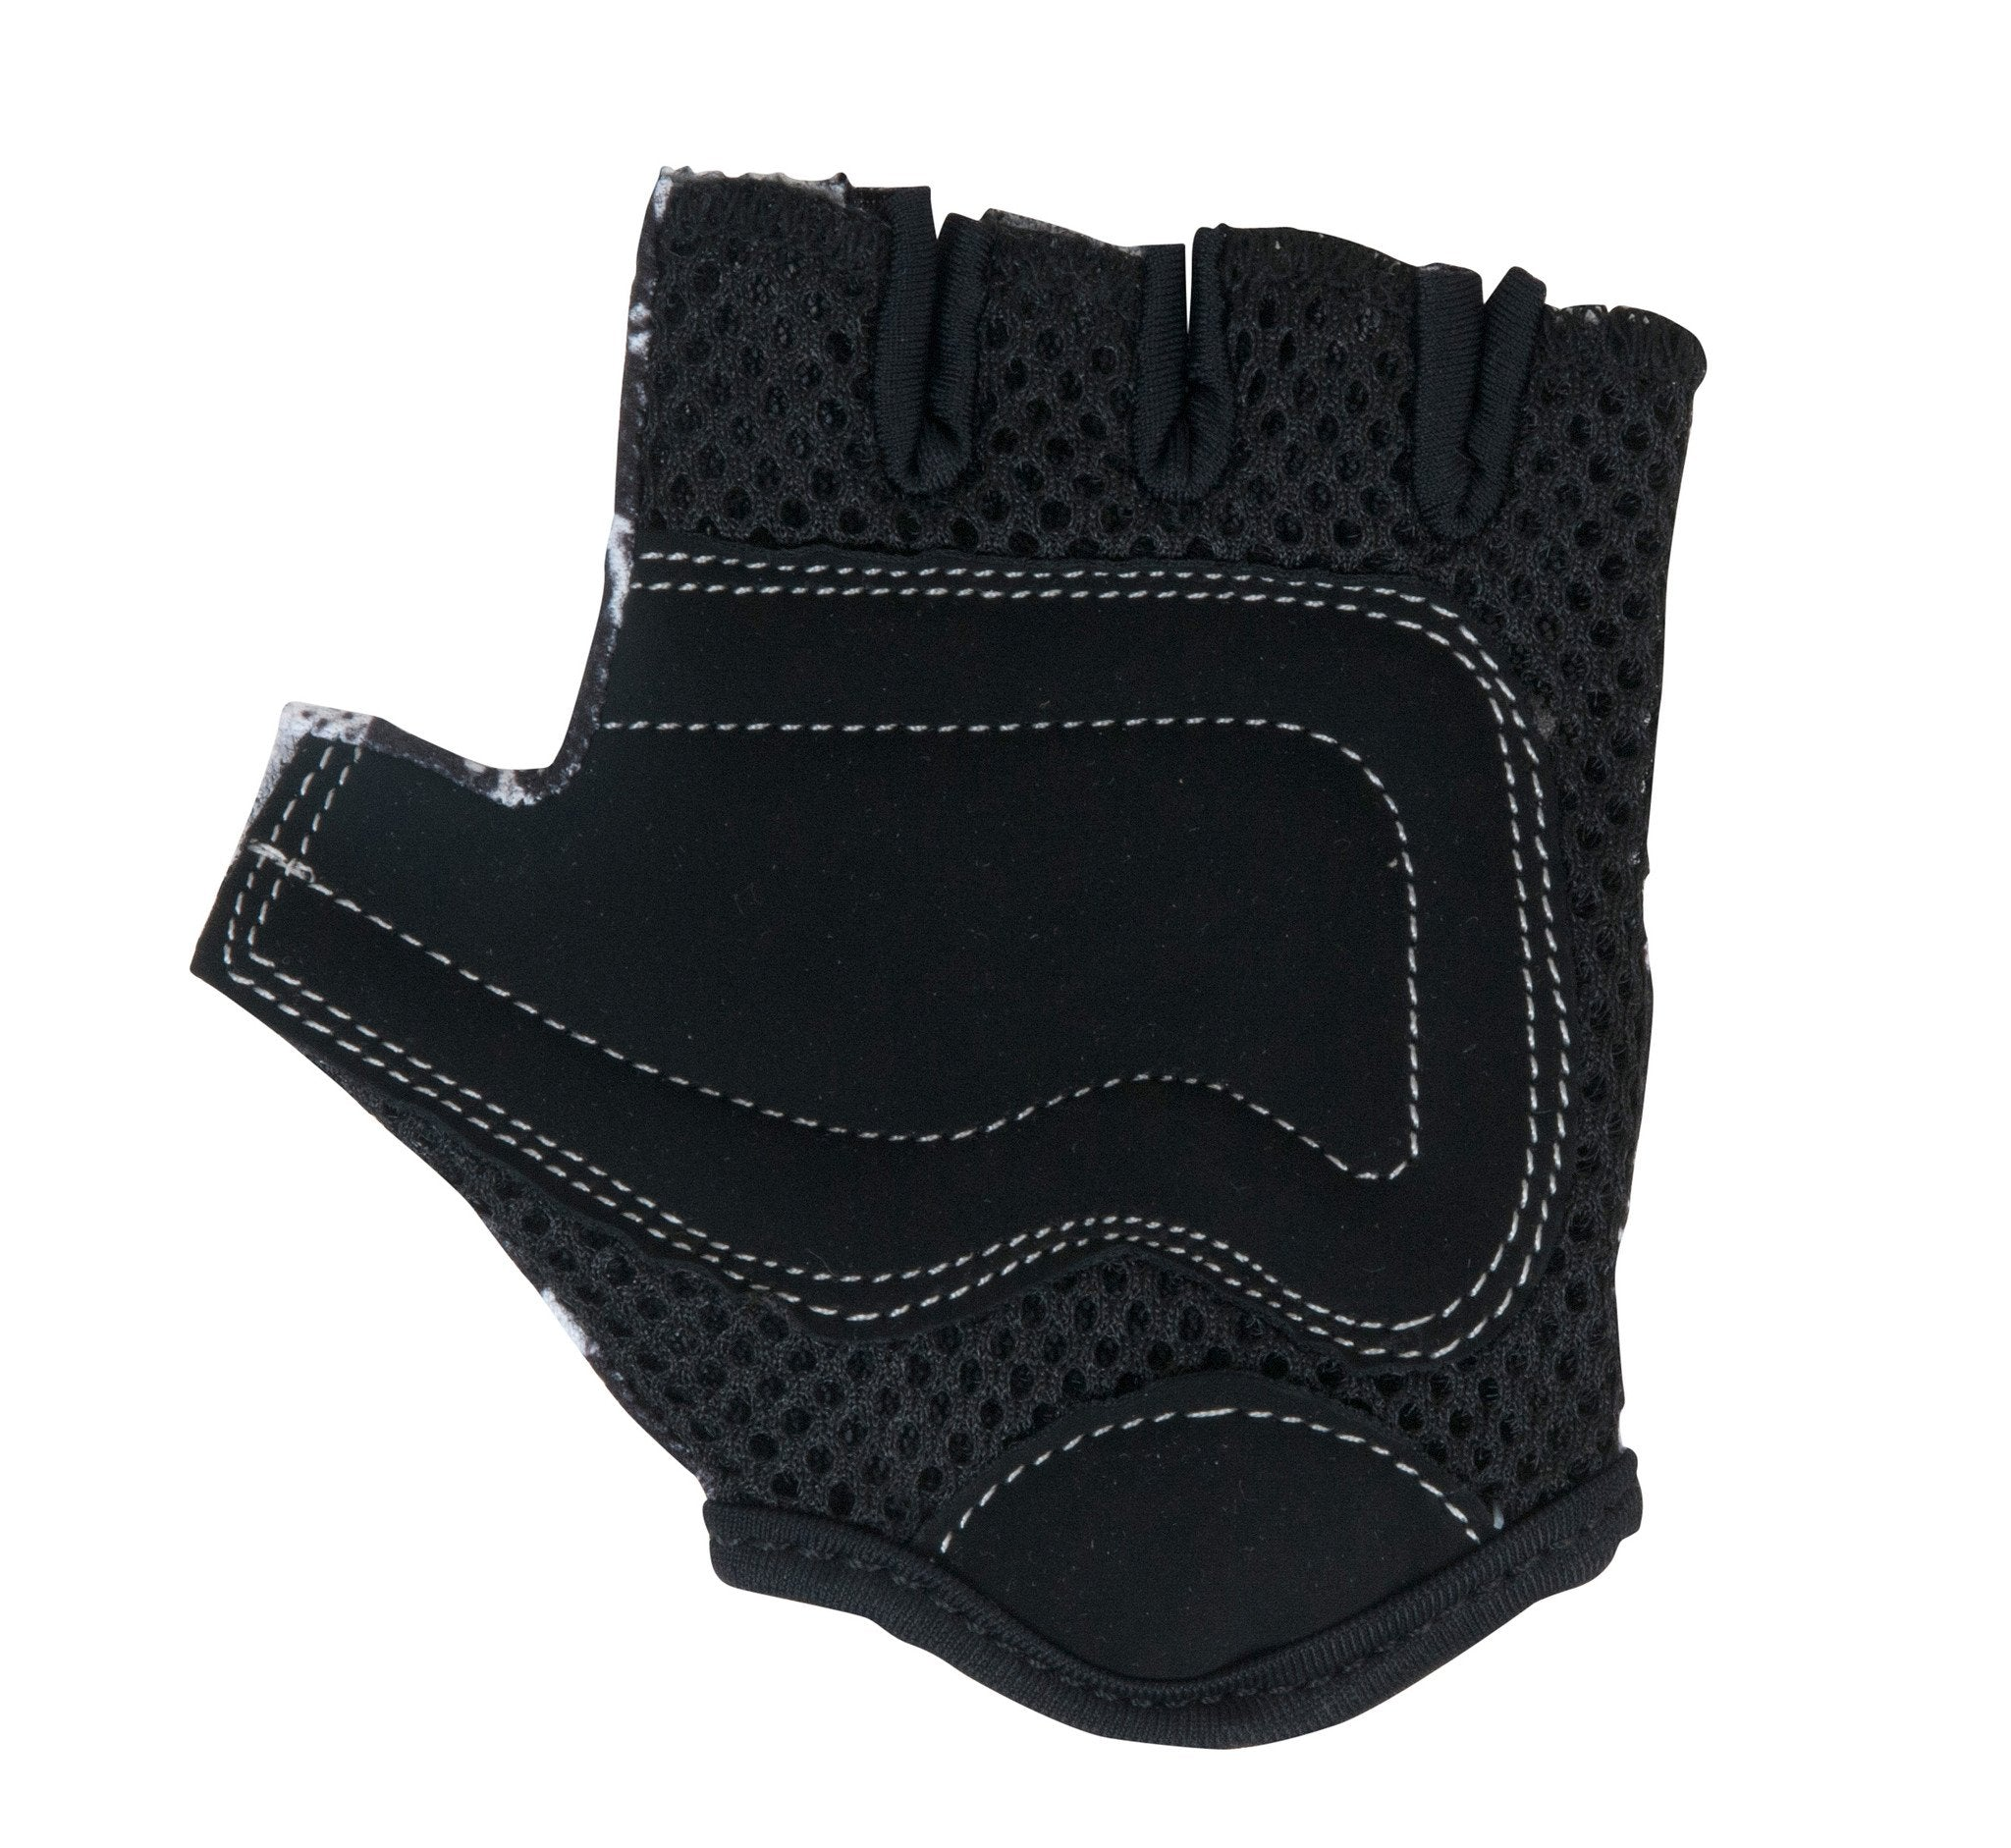 Skull & Bone Gloves - Kiddimoto